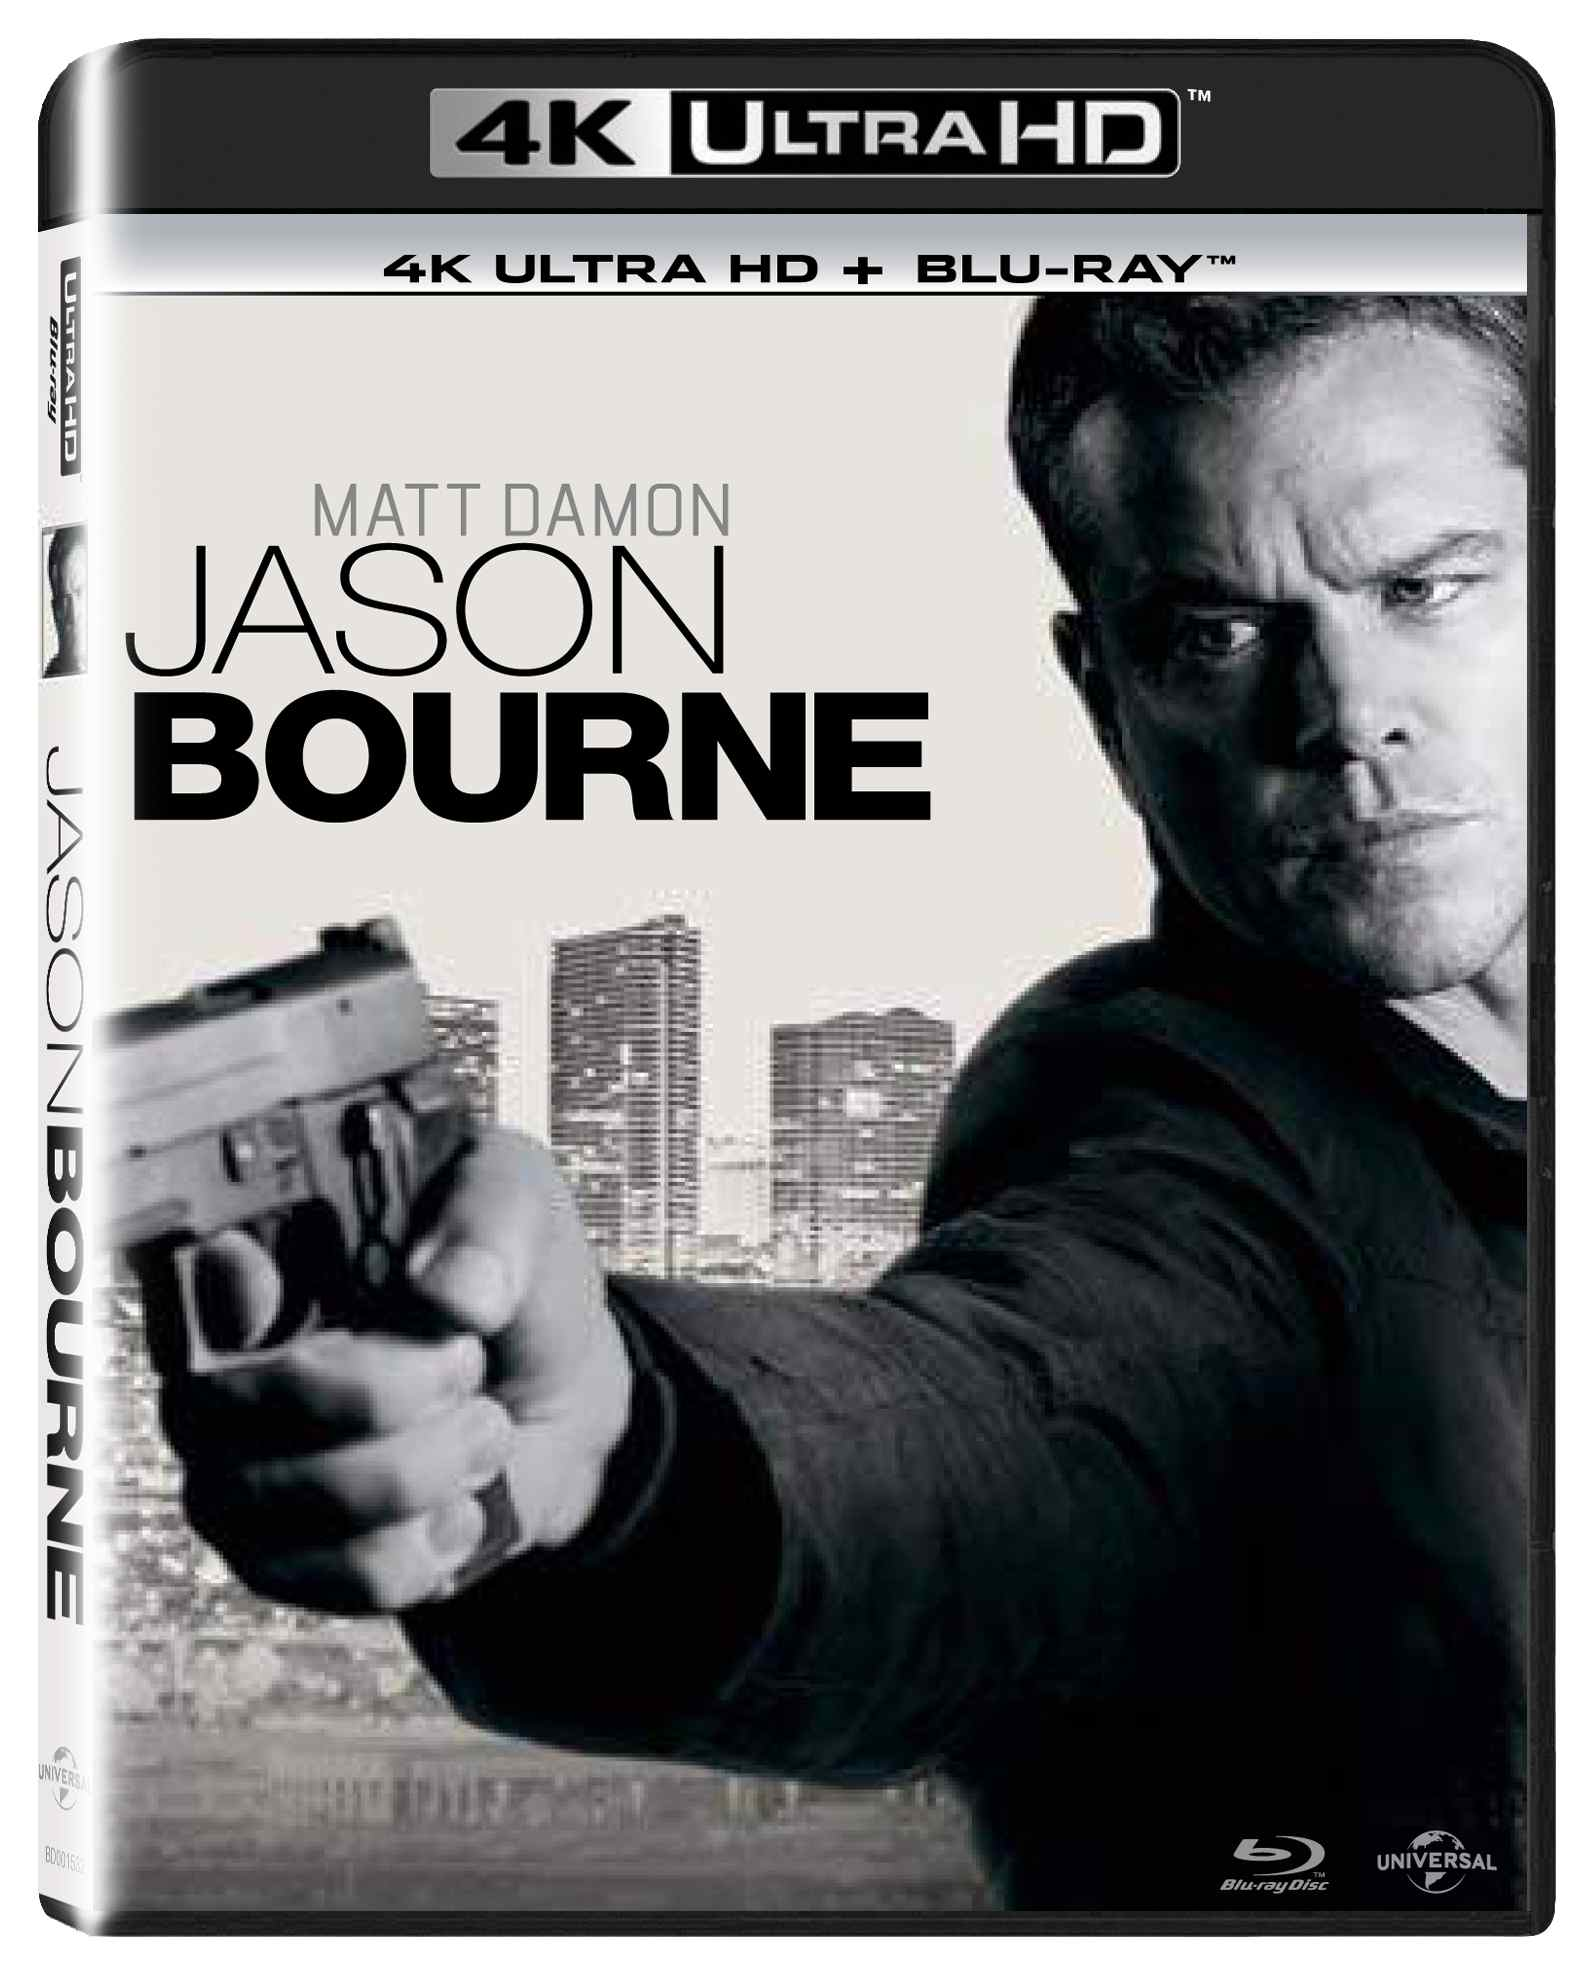 JASON BOURNE (4K ULTRA HD) - UHD Blu-ray + Blu-ray (2 BD)